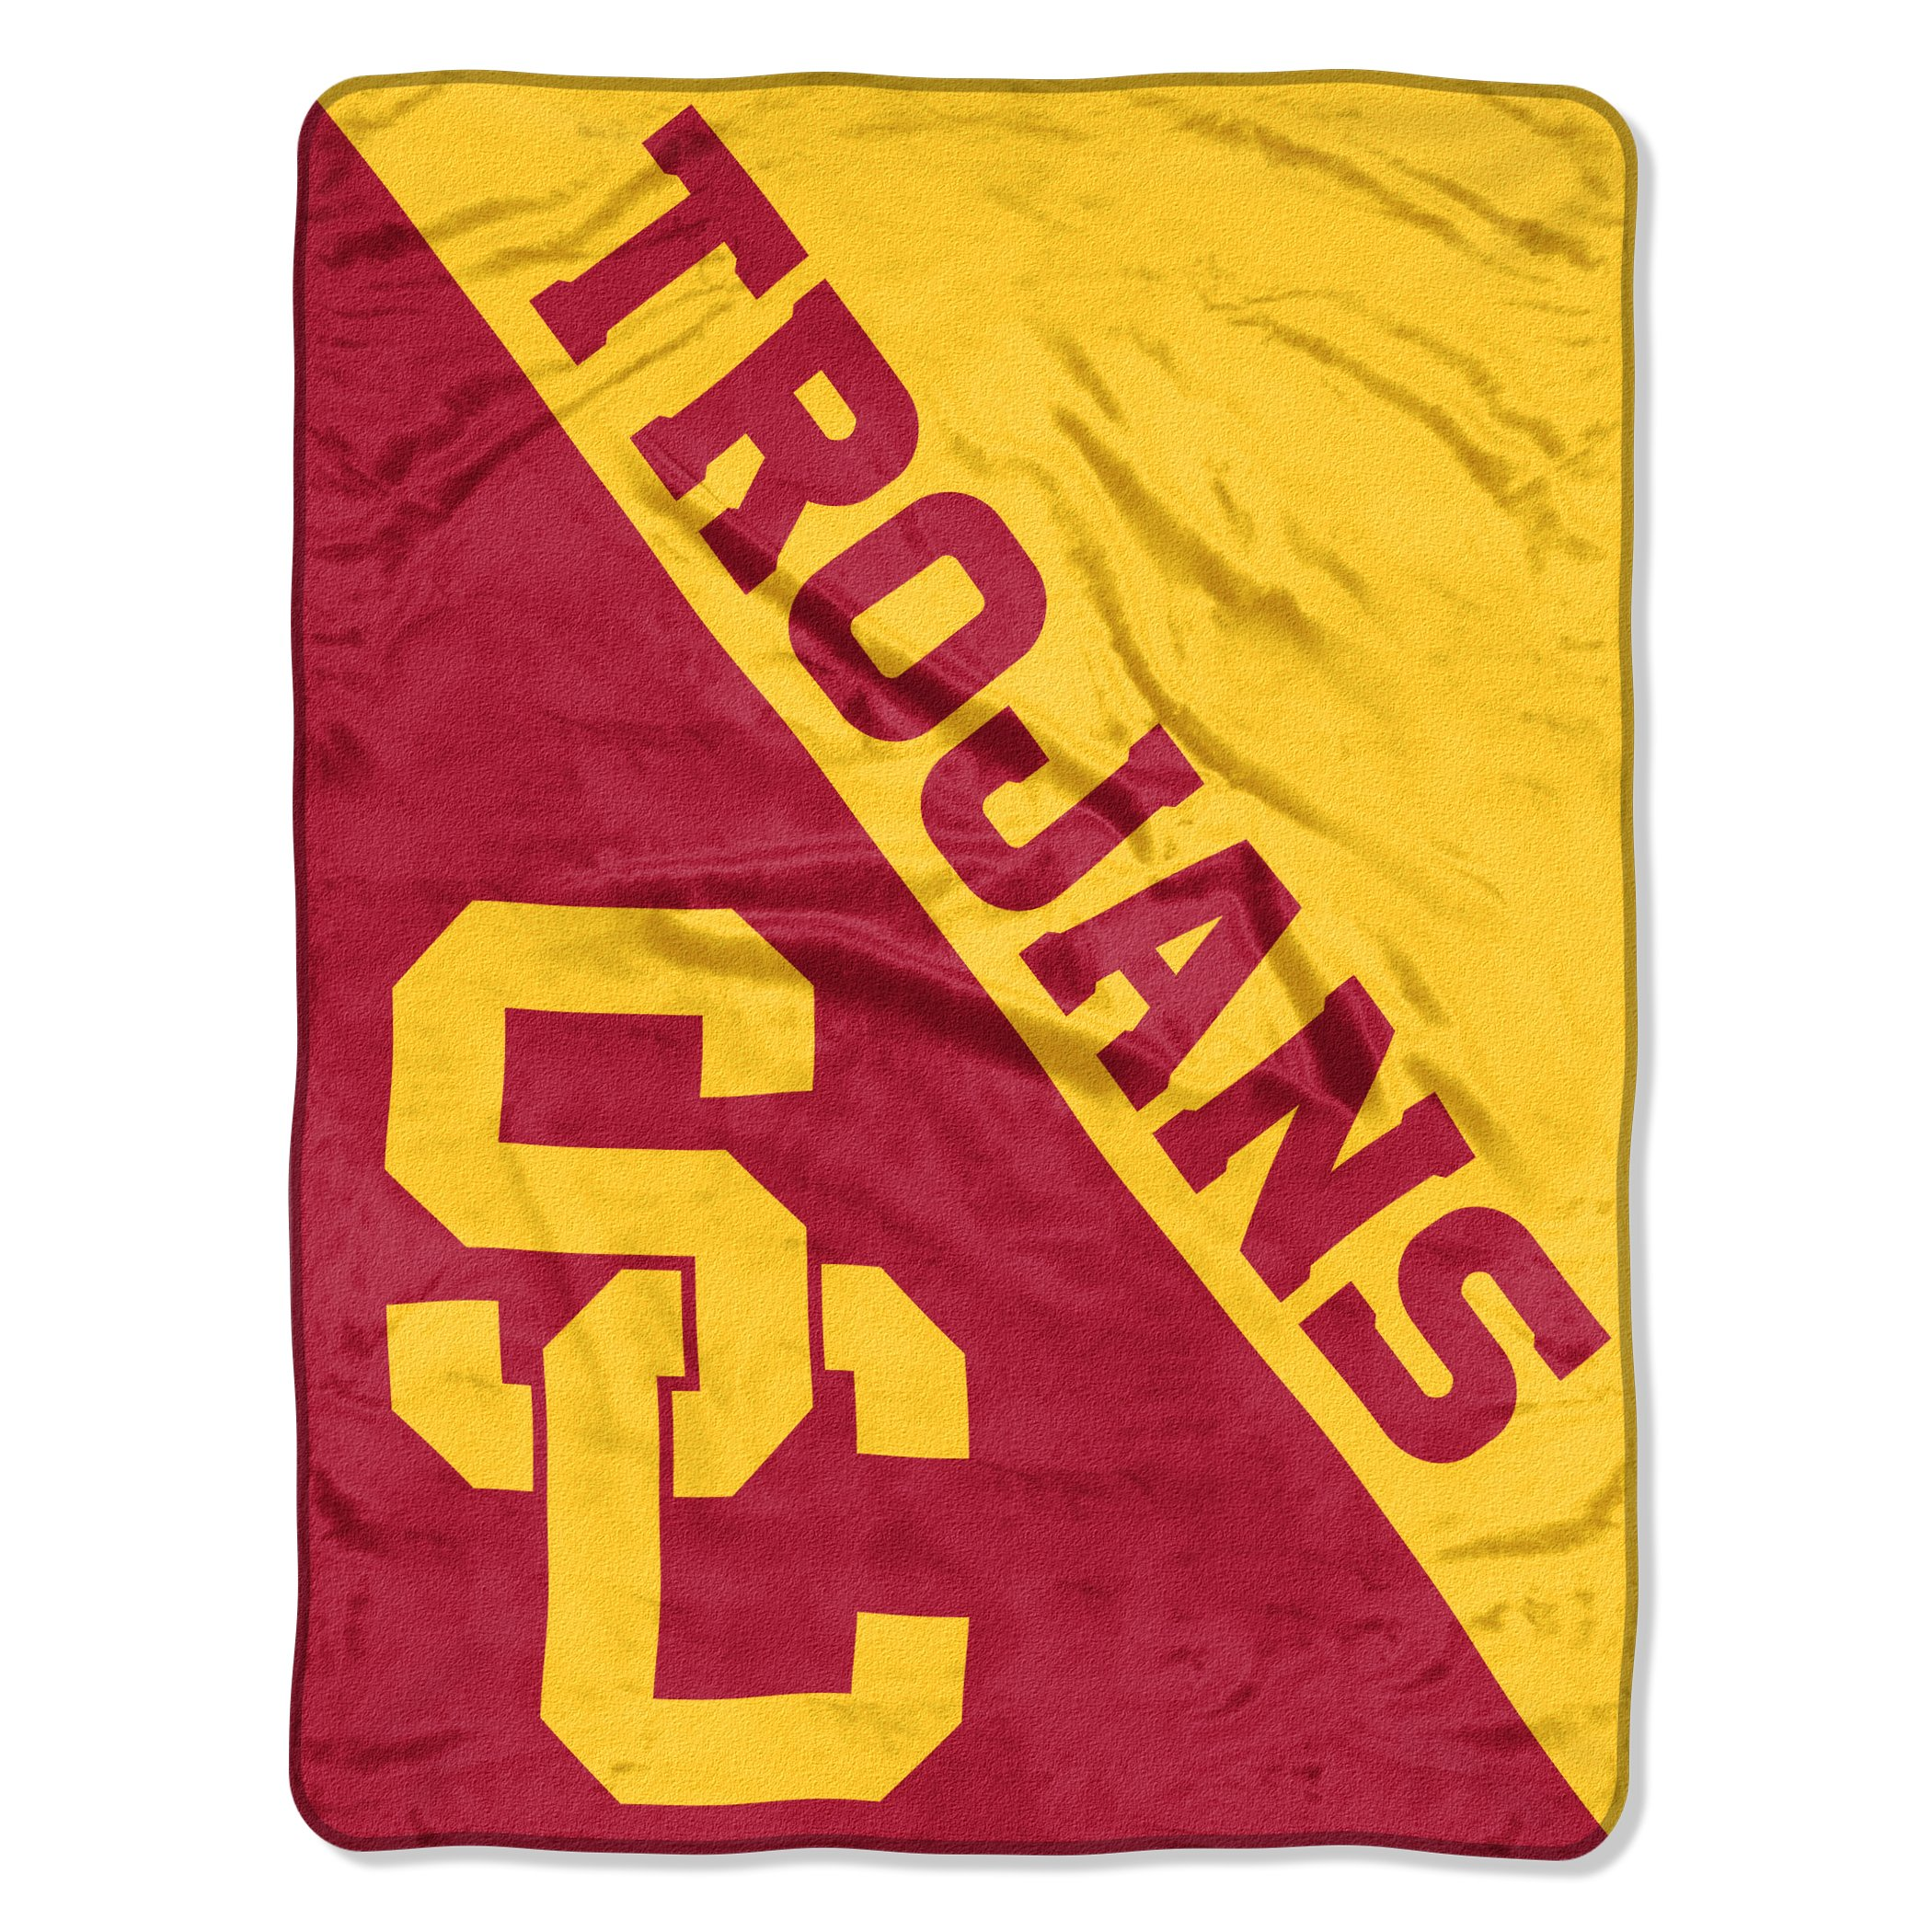 The Northwest Company Officially Licensed NCAA USC Trojans Halftone Micro Raschel Throw Blanket, 46'' x 60'', Multi Color by The Northwest Company